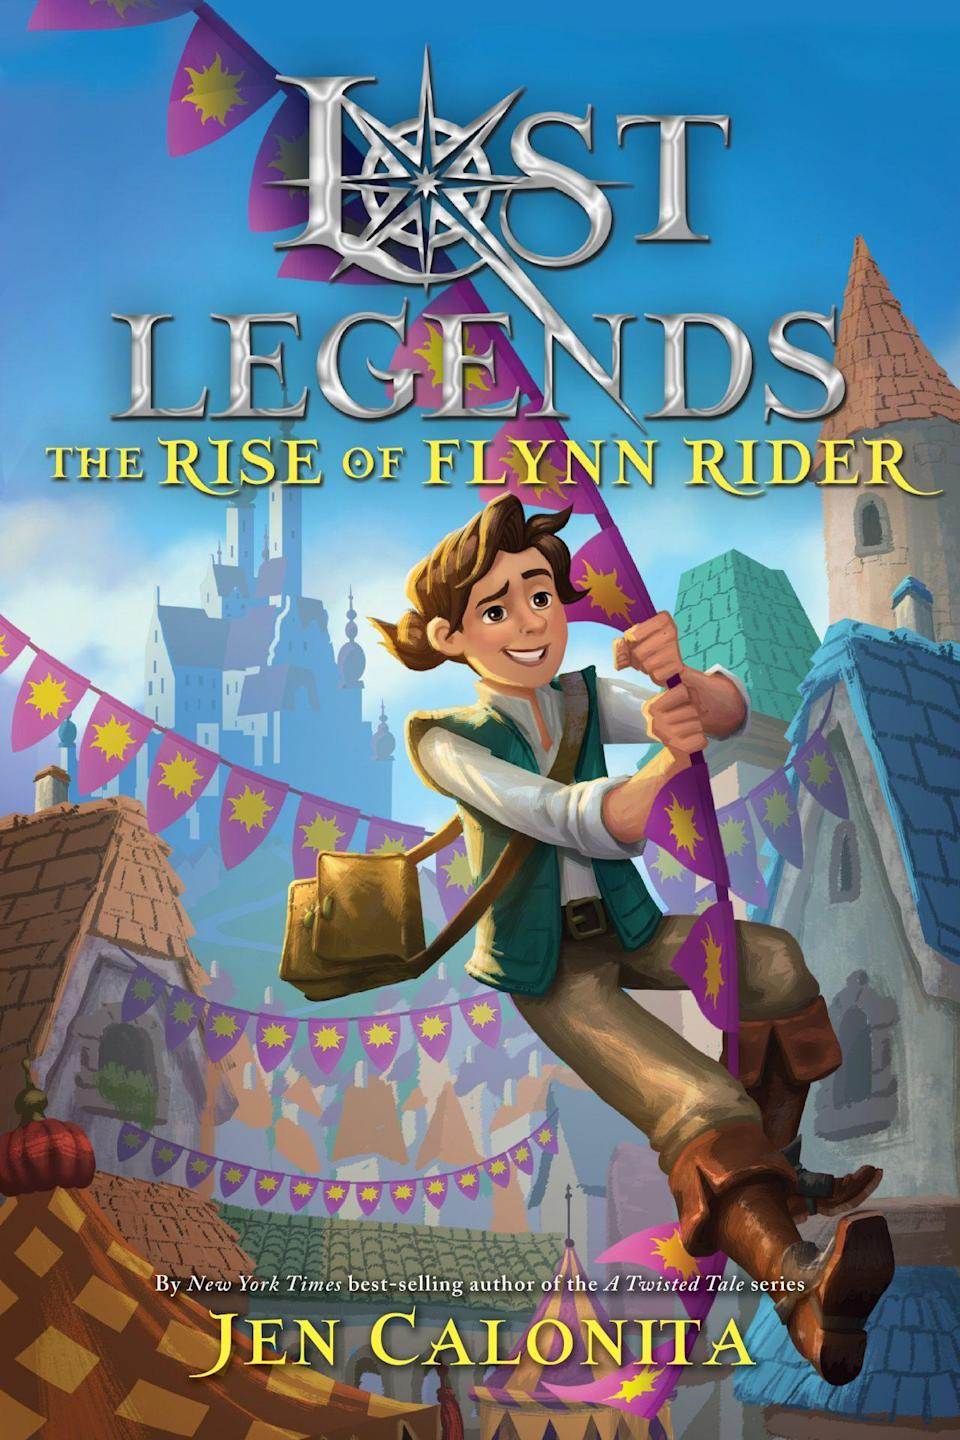 An illustrated book cover for Lost Legends: The Rise of Flynn Rider